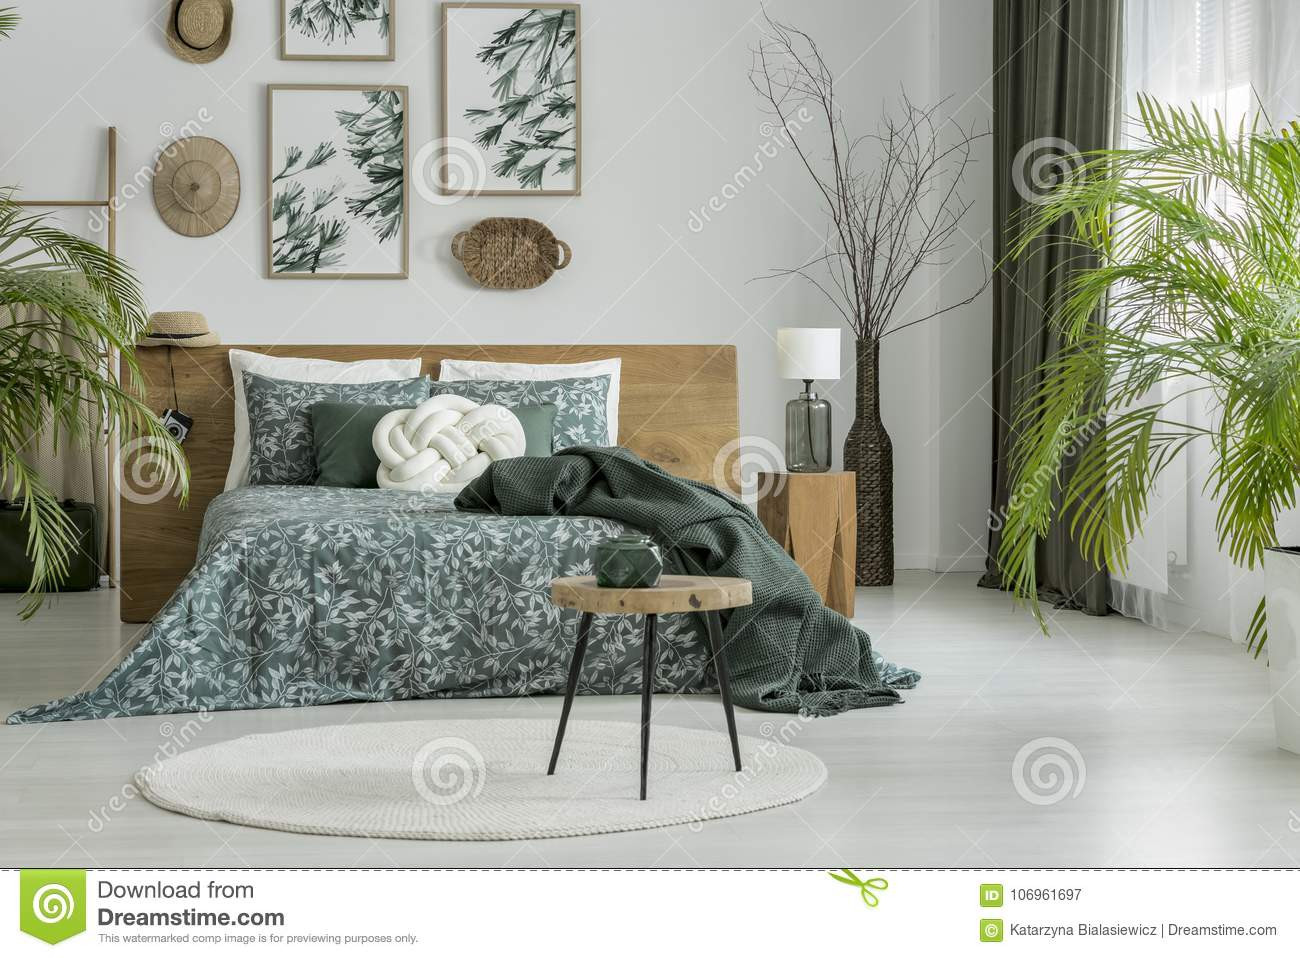 carpet or hardwood floors in living room of round carpet in green bedroom stock image image of design poster in round carpet in green bedroom